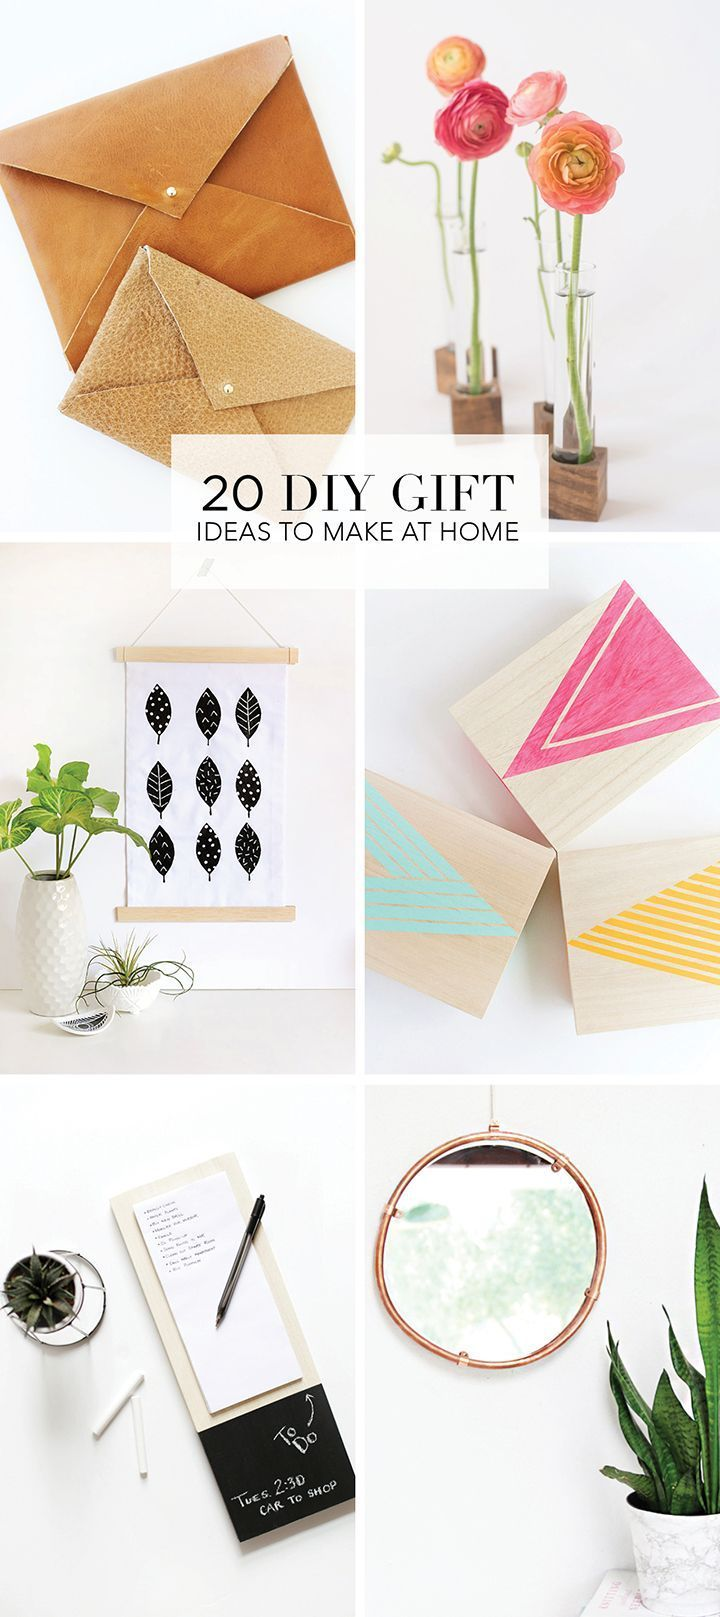 20 DIY Holiday Gift Ideas | Pinterest | Diy holiday gifts, Gift and ...